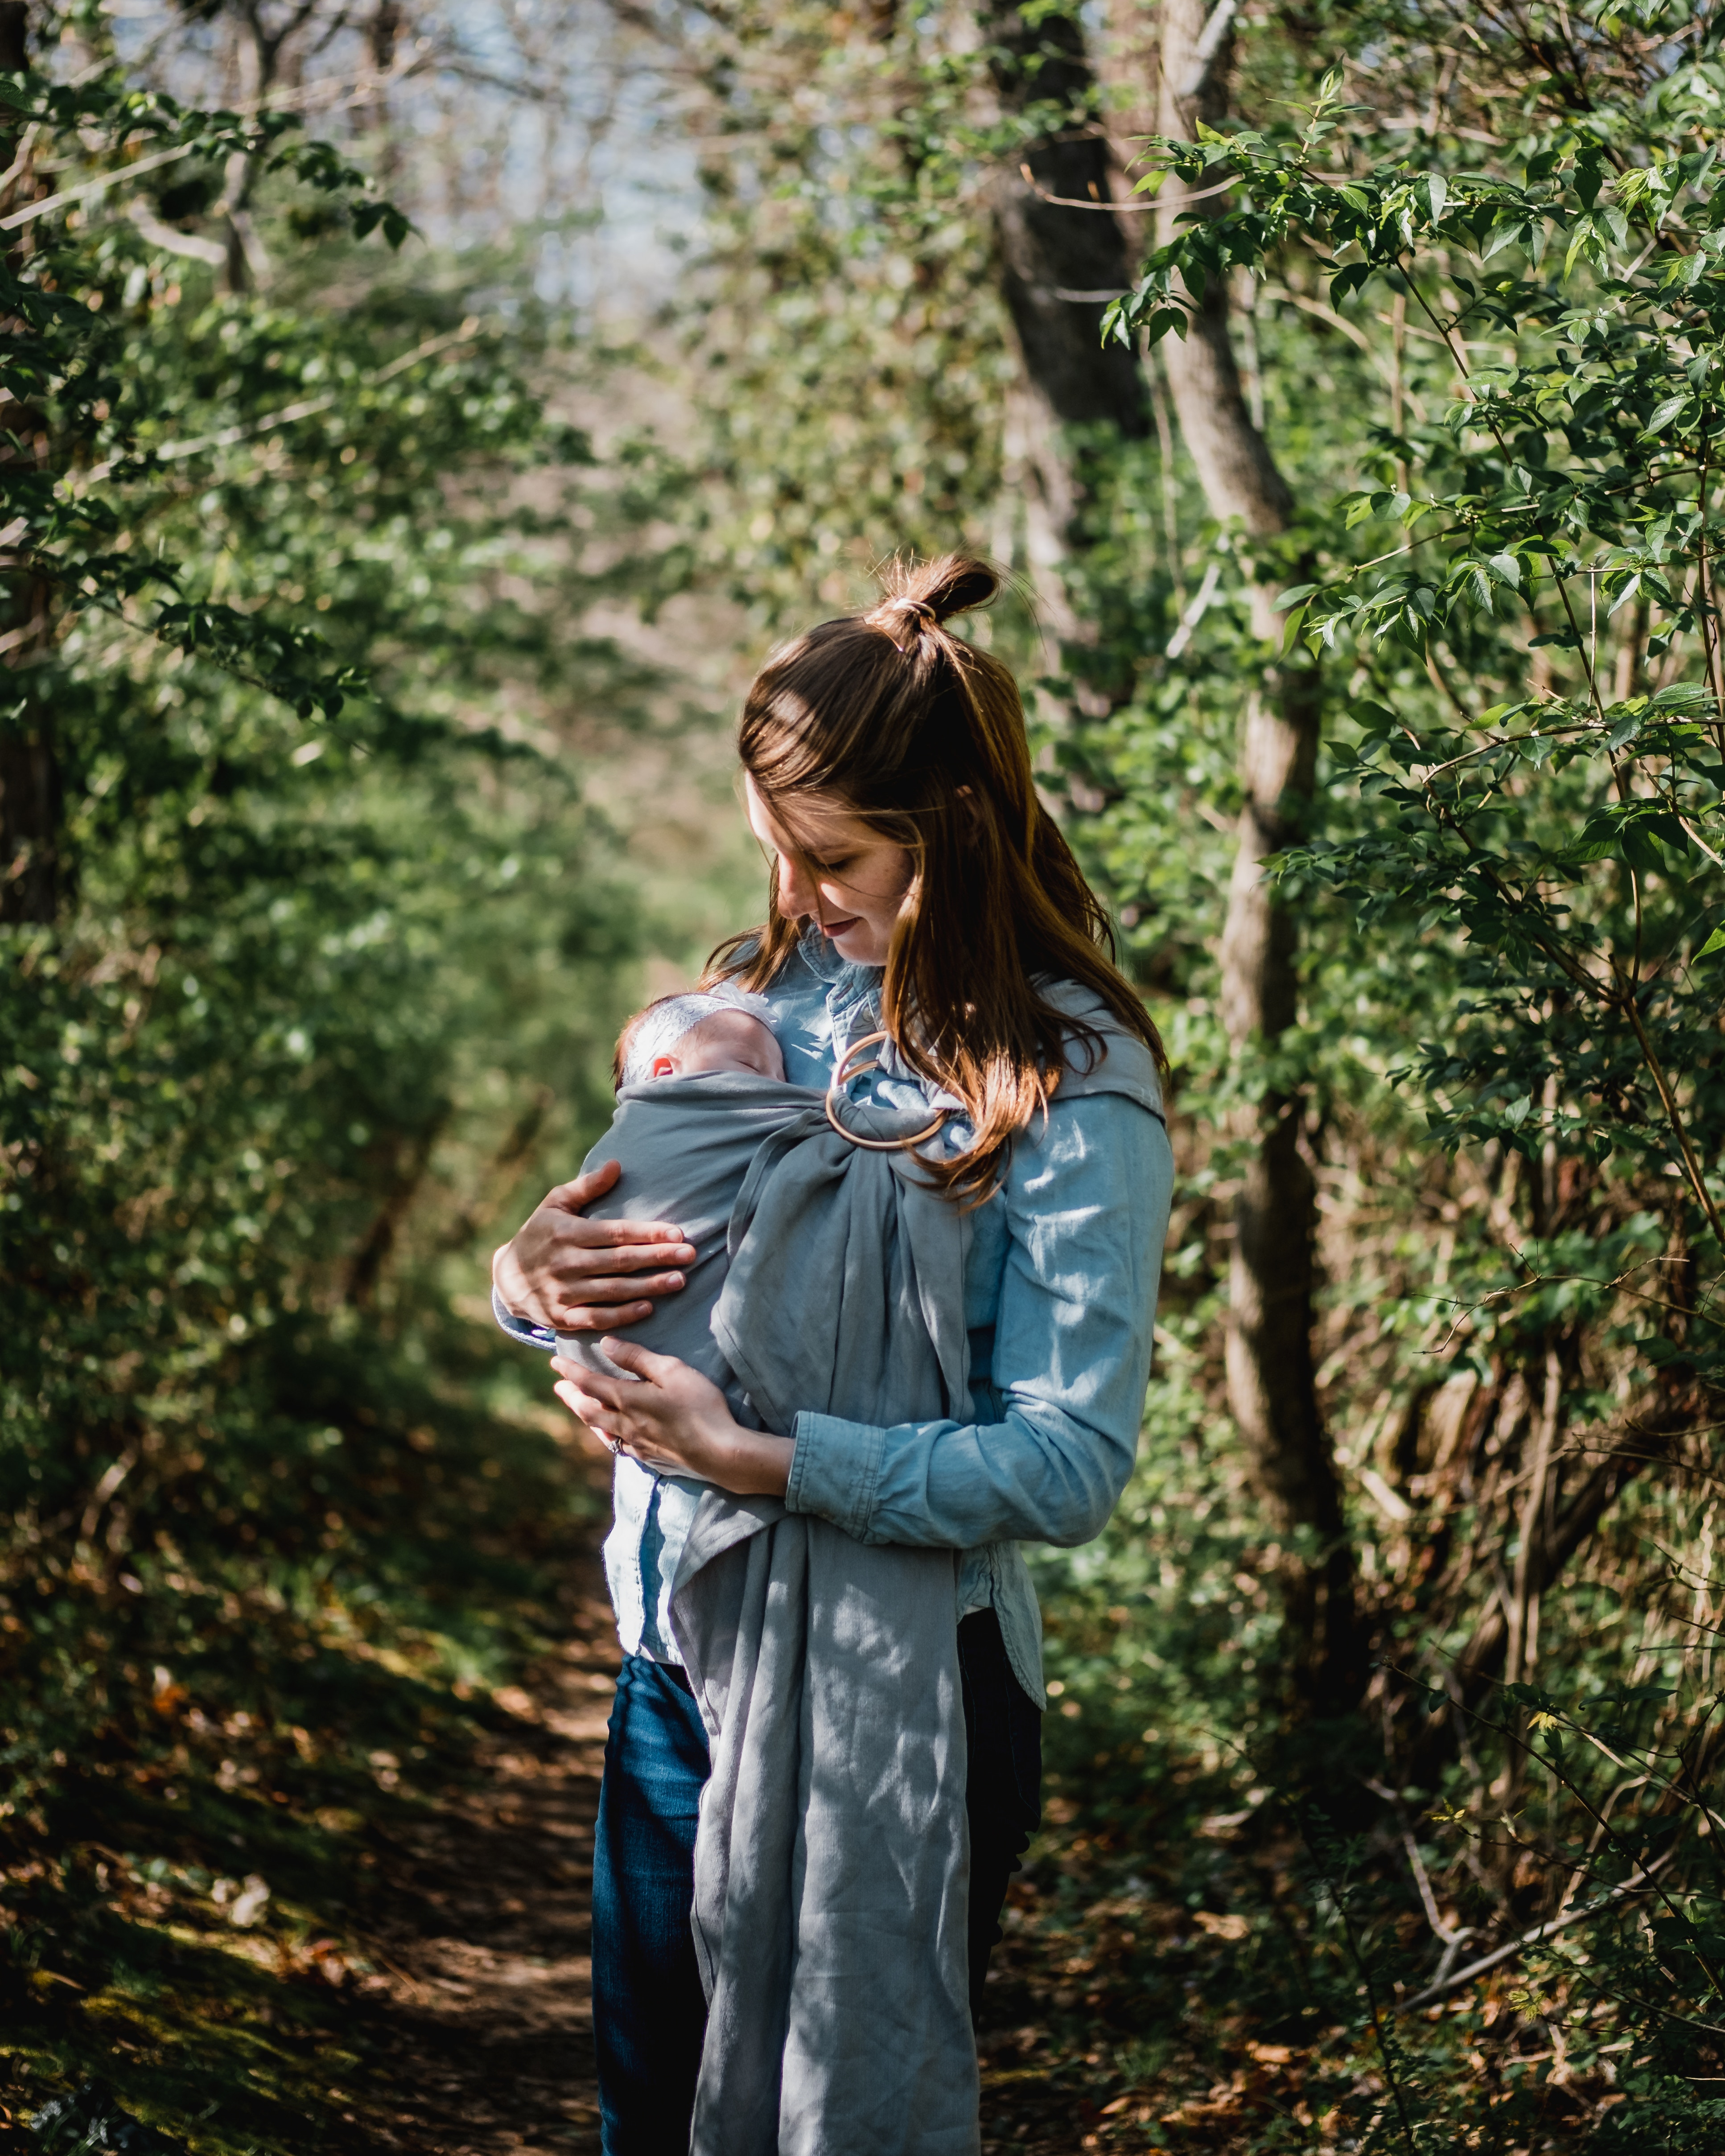 An in-depth review of the best baby slings available in 2019.